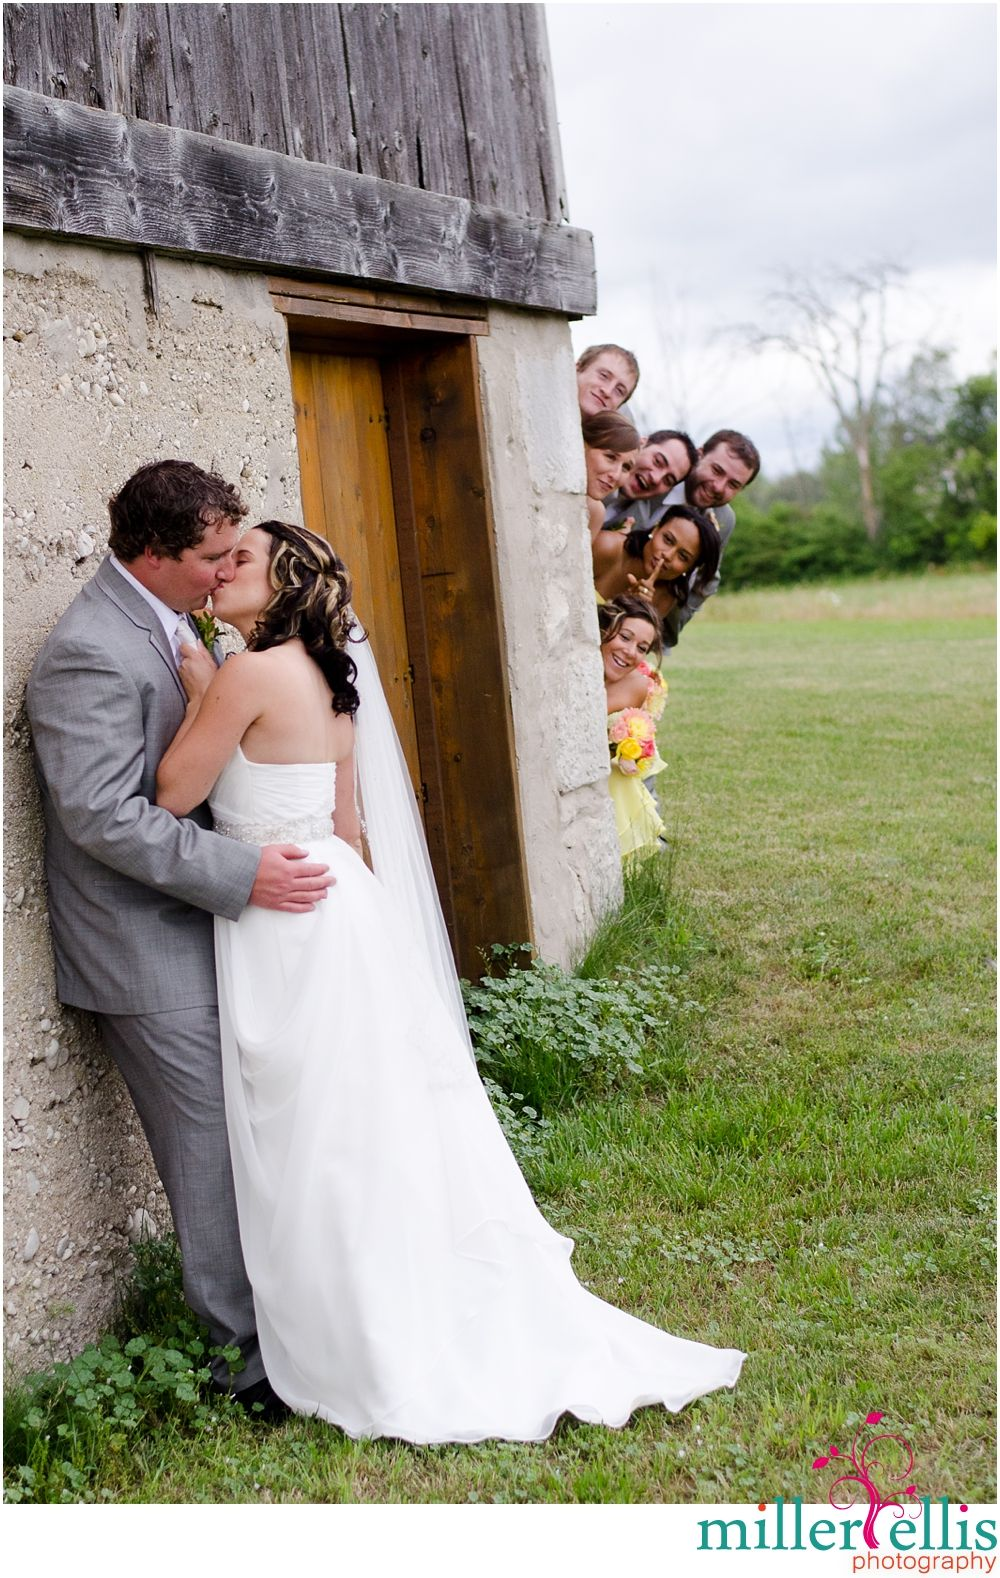 Cute wedding reception dresses for the bride  Fun Bridal Party Shot Hahahaha Spies the lot of them